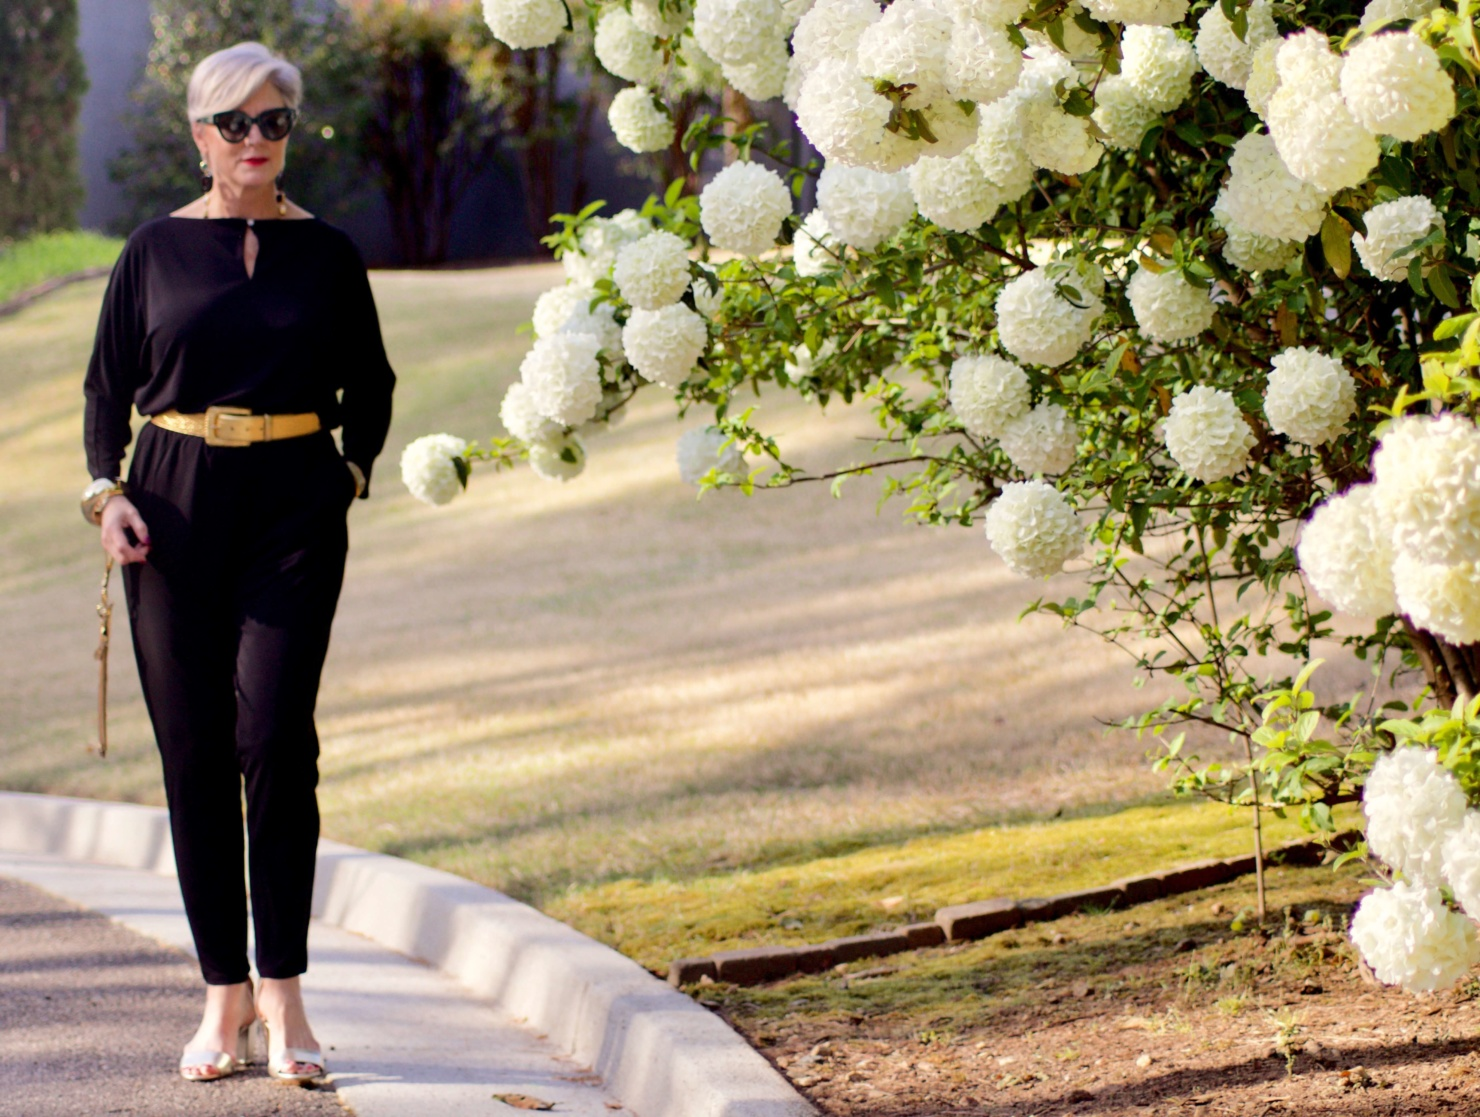 beth from Style at a Certain Age wears a black jumpsuit, gold sandals, gold belt, and gold clutch handbag